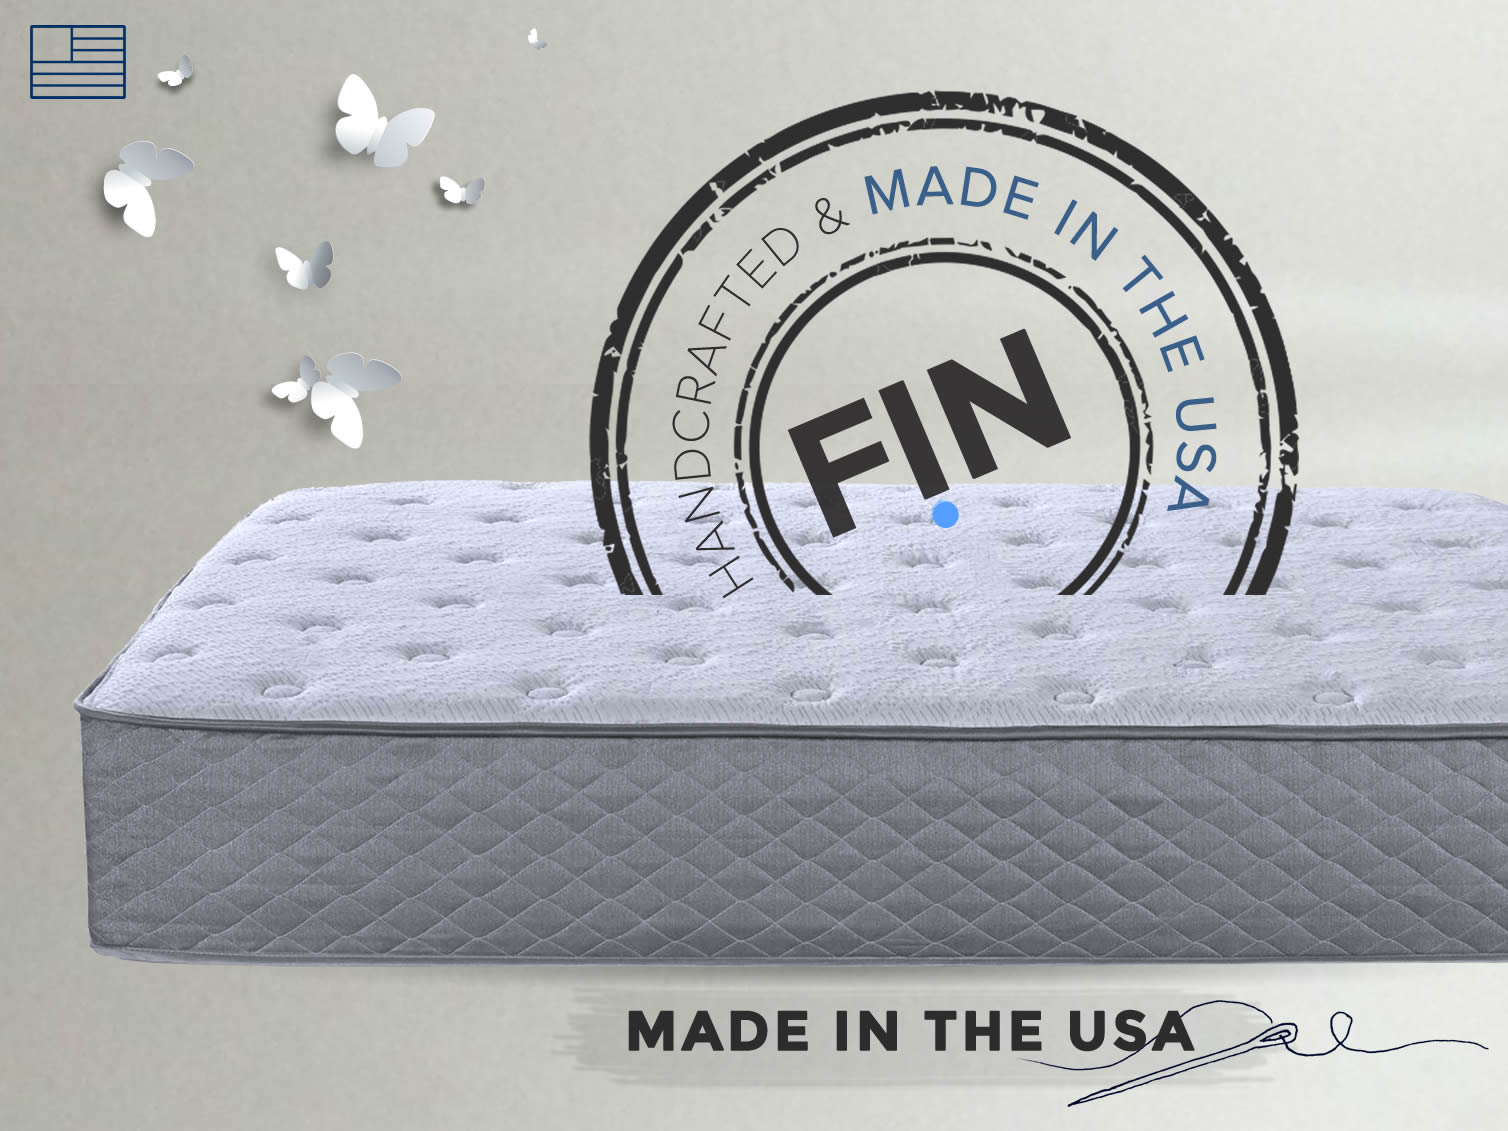 a Fin mattreSS IS MANUFACTURED in the USA. tHE MEMORY FOAM, LATEX AND POCKET SPRINGS ARE 100% SOURCED AND made in America